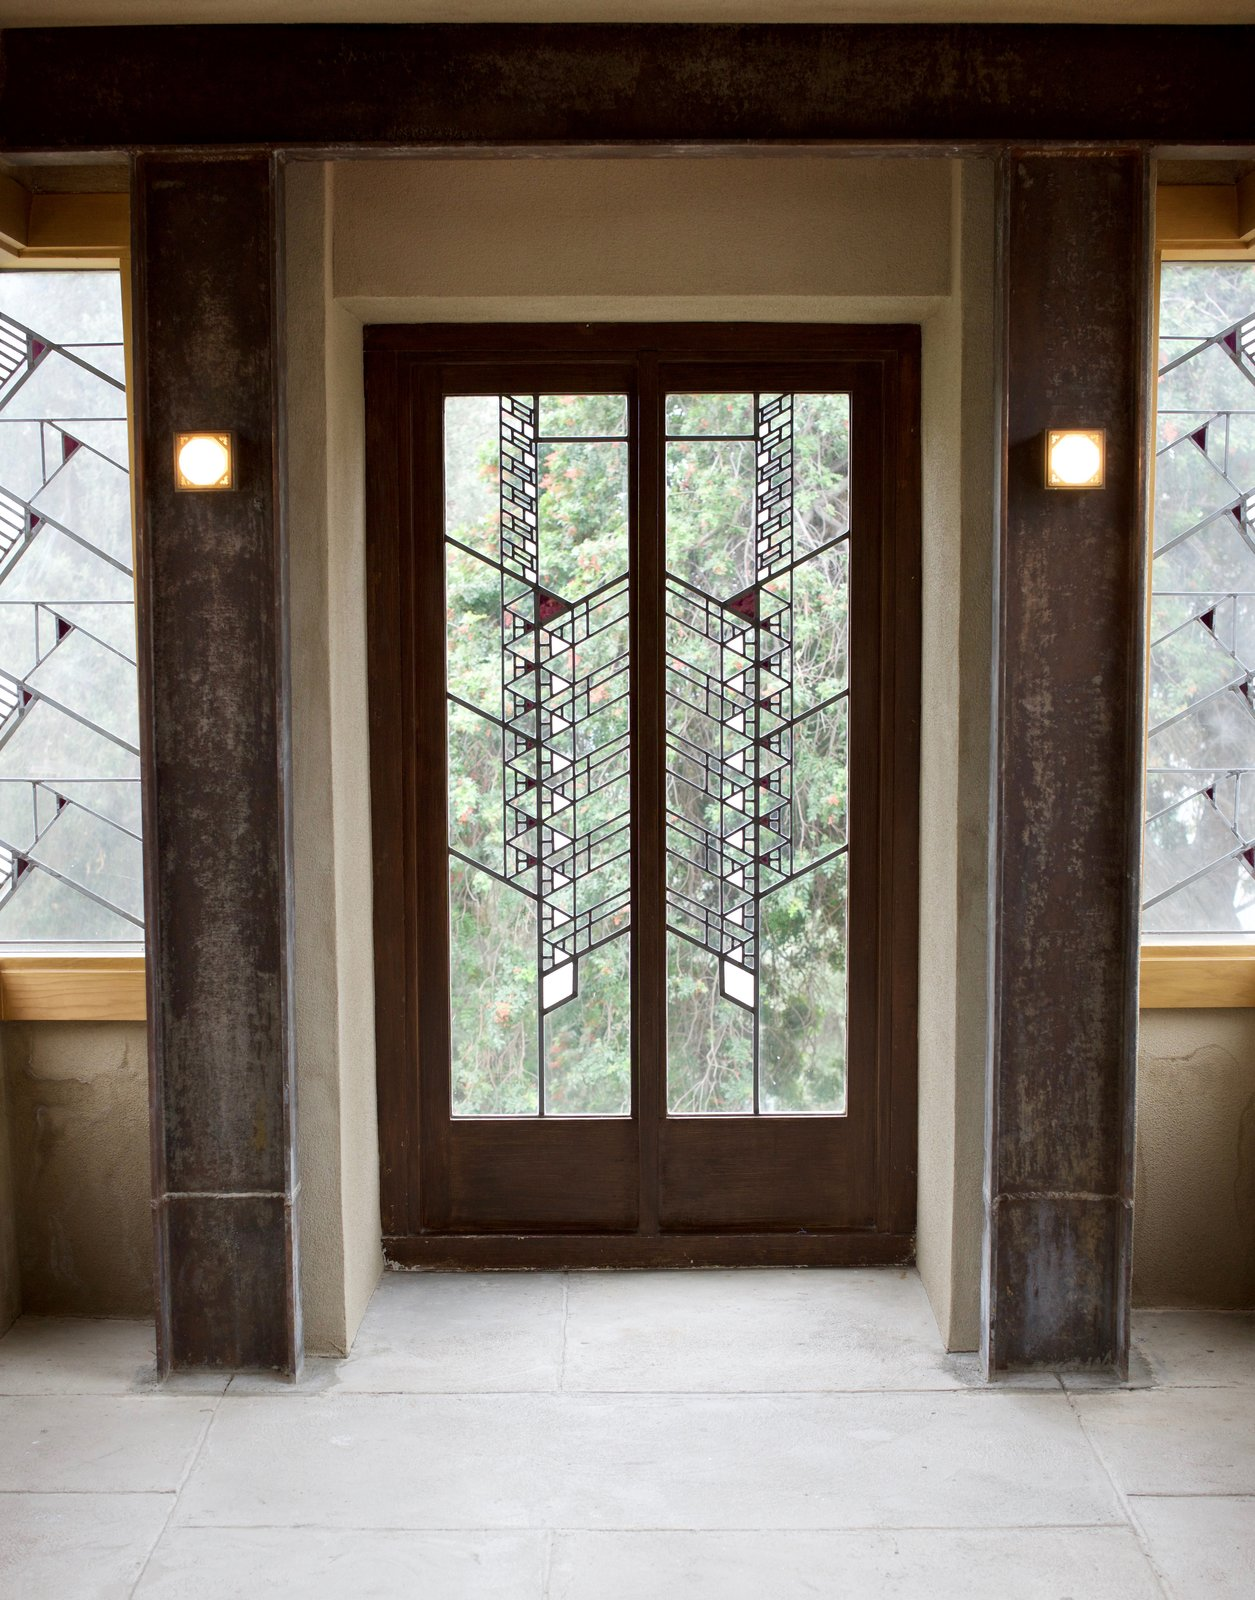 The Hollyhock House was one of the last residences where Wright designed a comprehensive art glass window scheme that's carried throughout the residence. Throughout the property, there are 130 examples of this.  Photo 13 of 14 in Iconic Perspectives: Frank Lloyd Wright's Hollyhock House